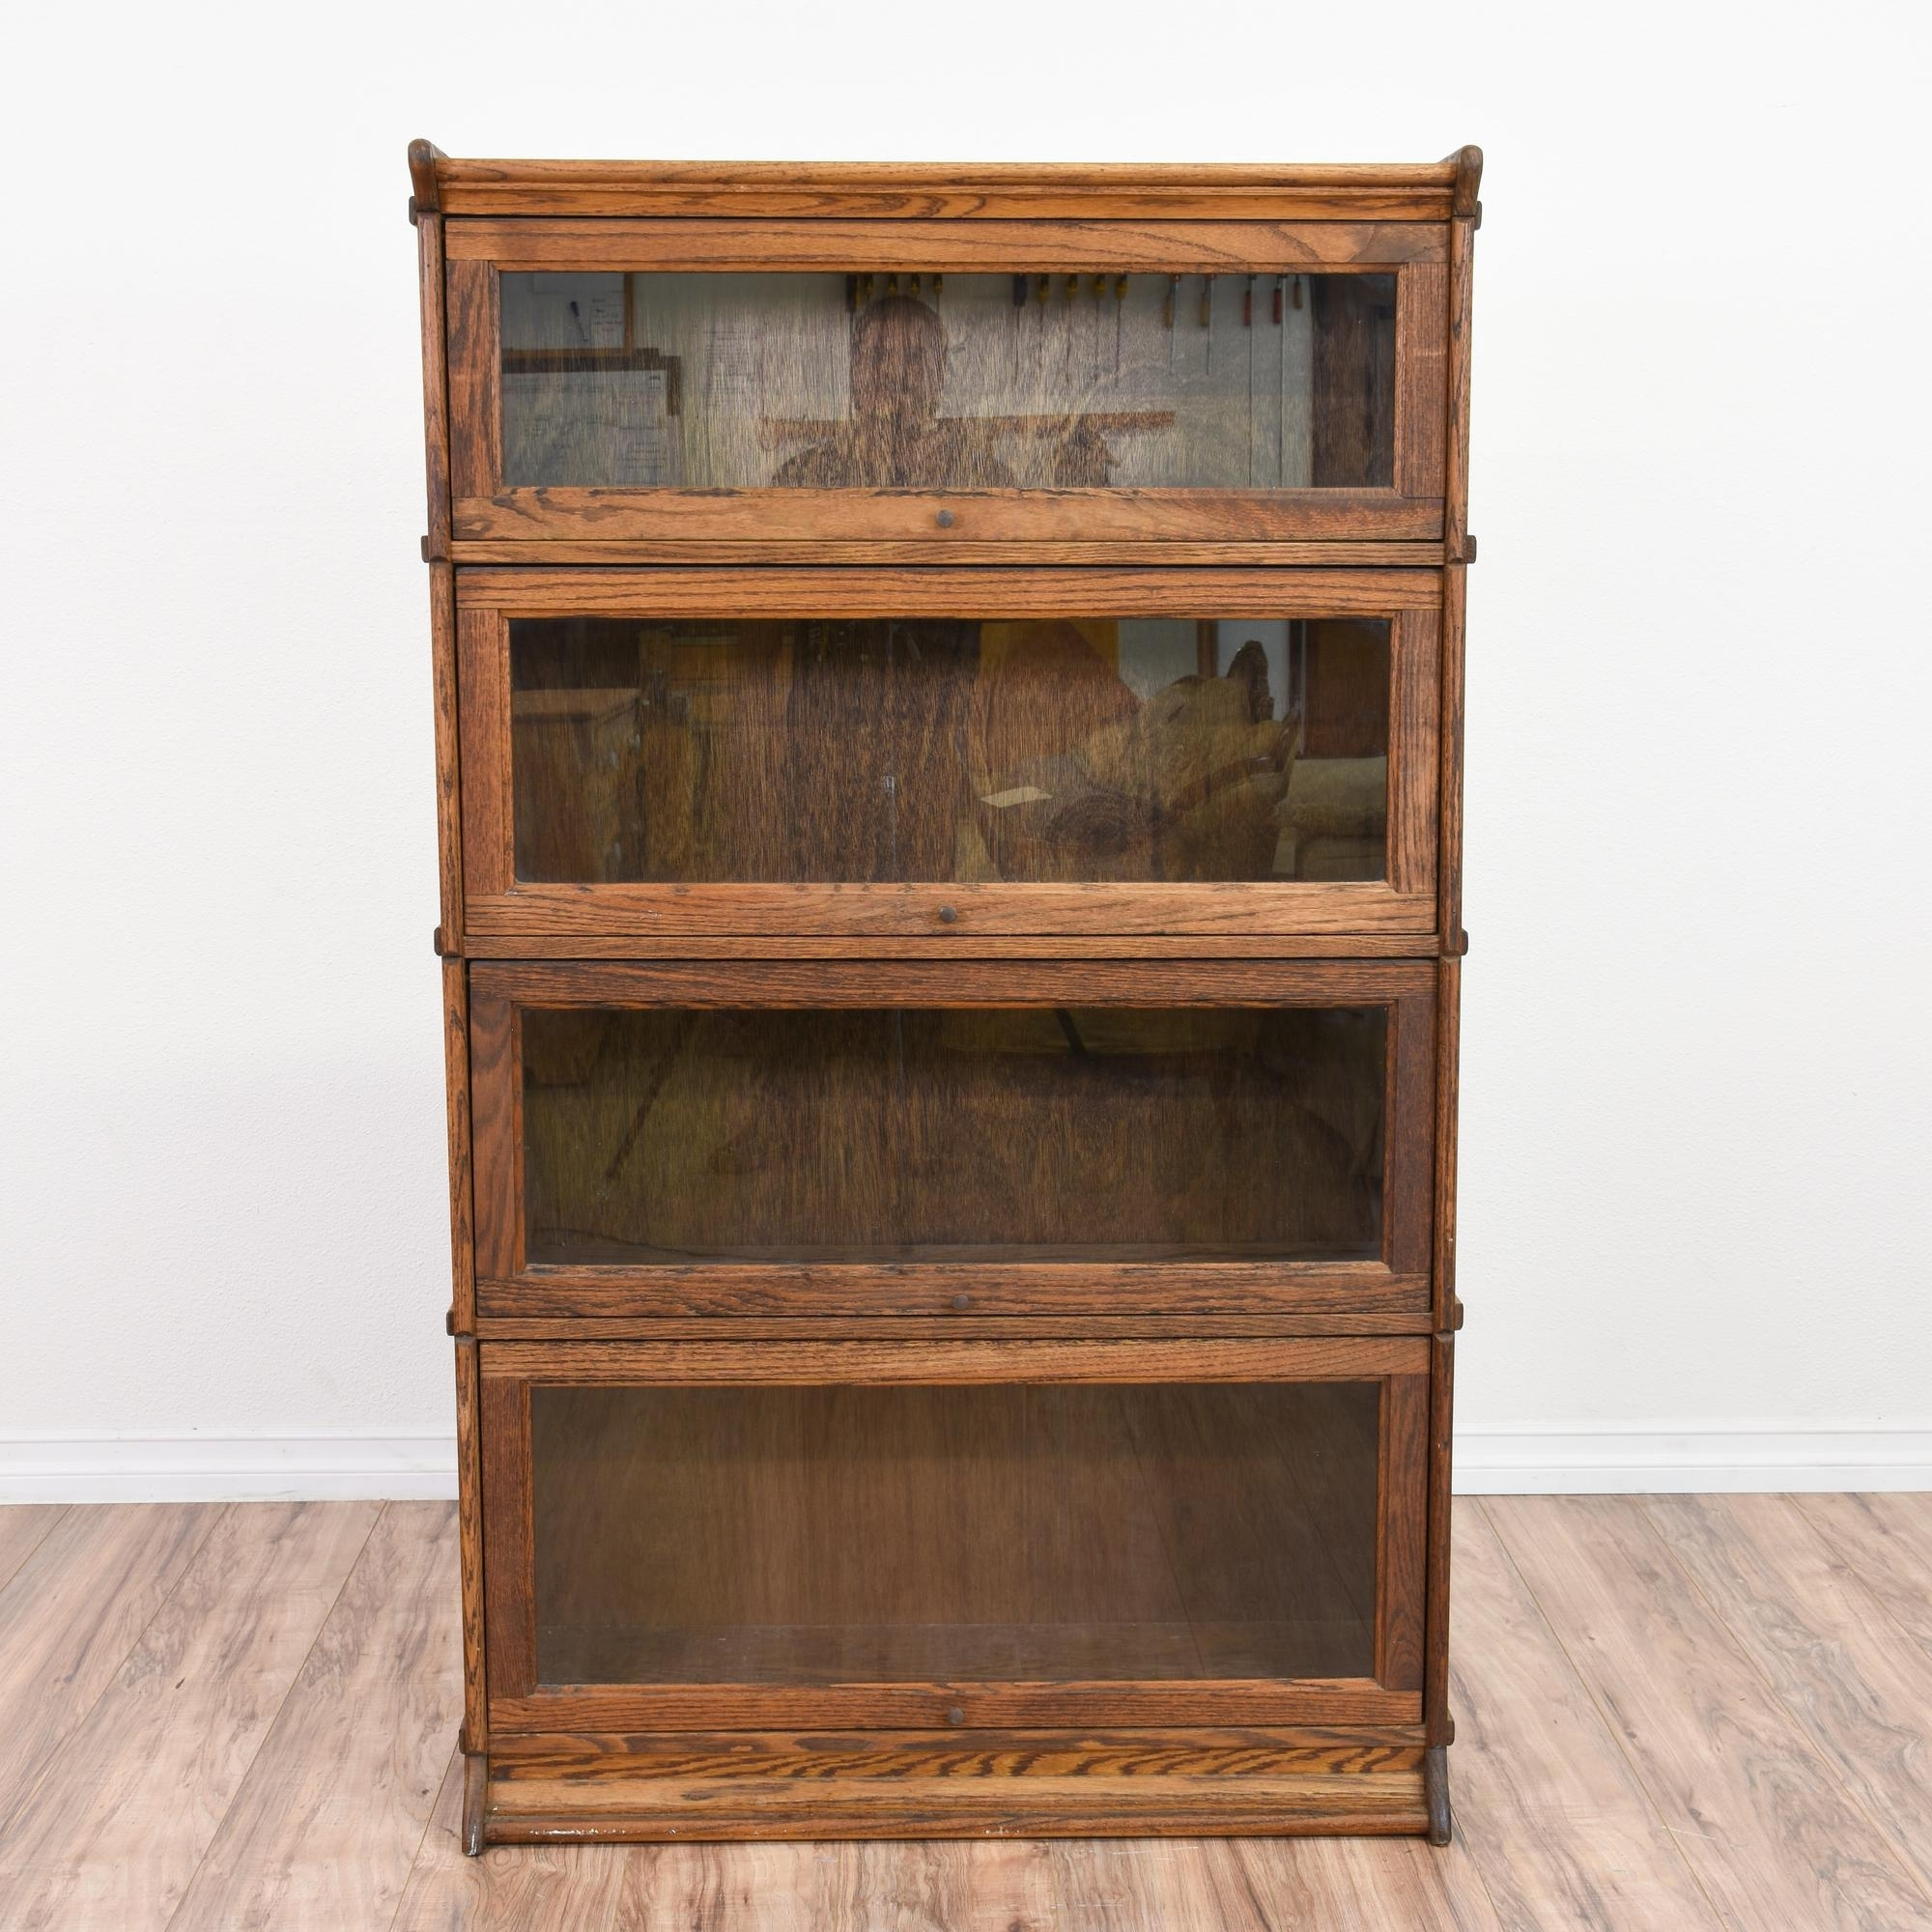 Fashionable This Rustic Lawyers Bookcase Is Featured In A Solid Wood With A For Solid Oak Shelves (View 3 of 15)